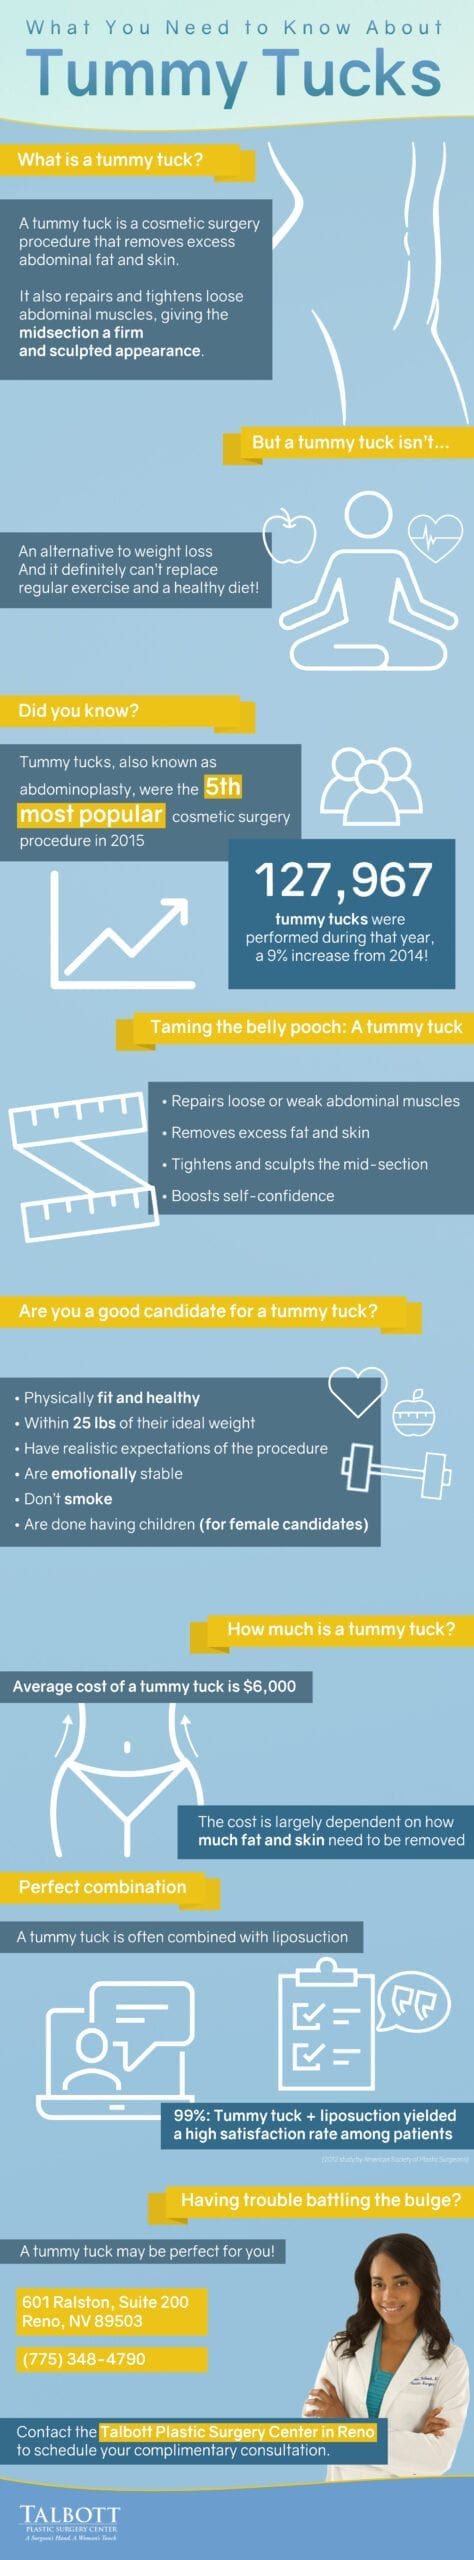 Tummy tuck reno infographic from Talbott Plastic Surgery Center